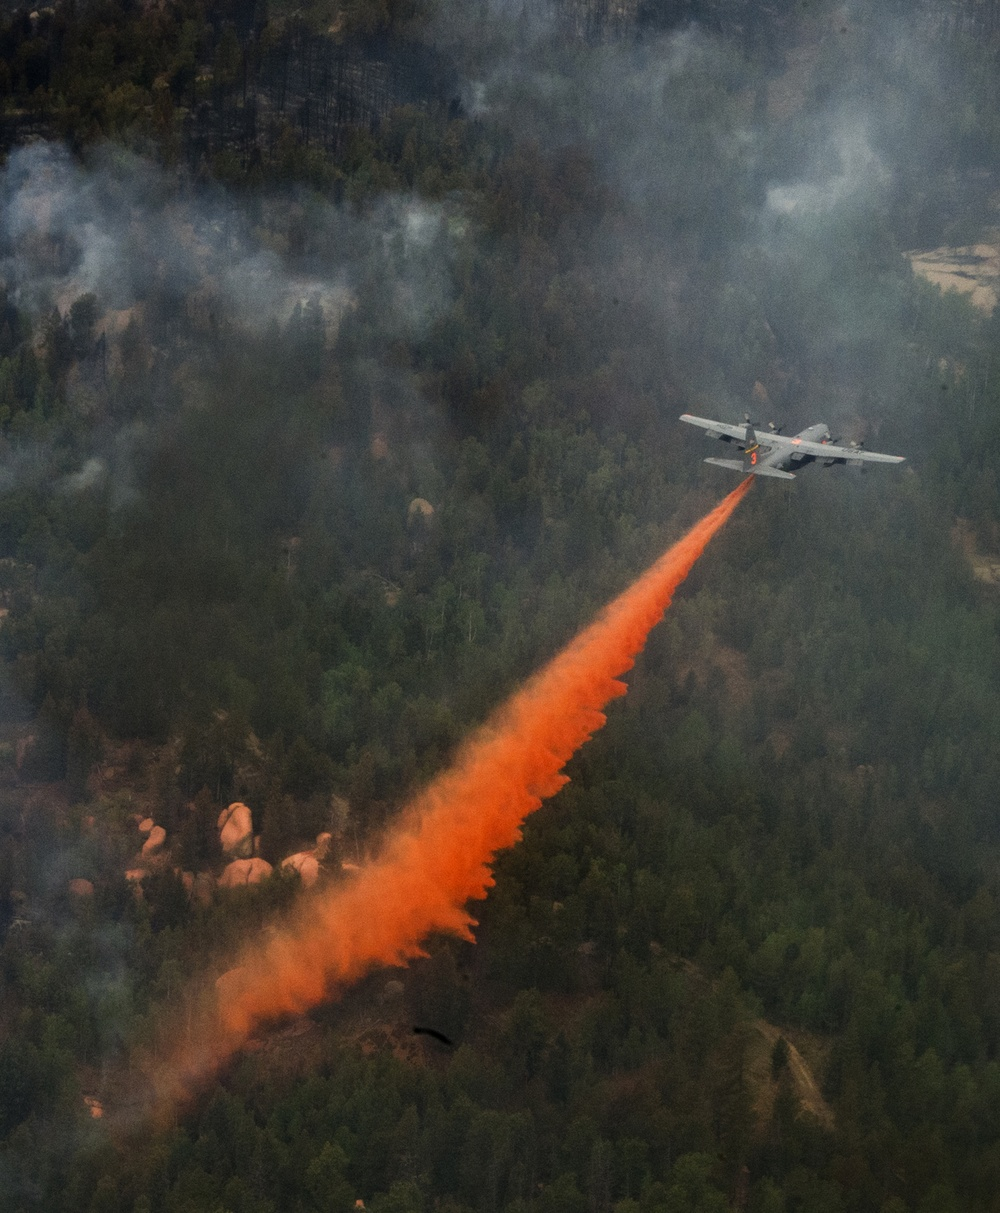 Air National Guard, Reserve MAFFS-equipped C-130s integral part of wildfire suppression